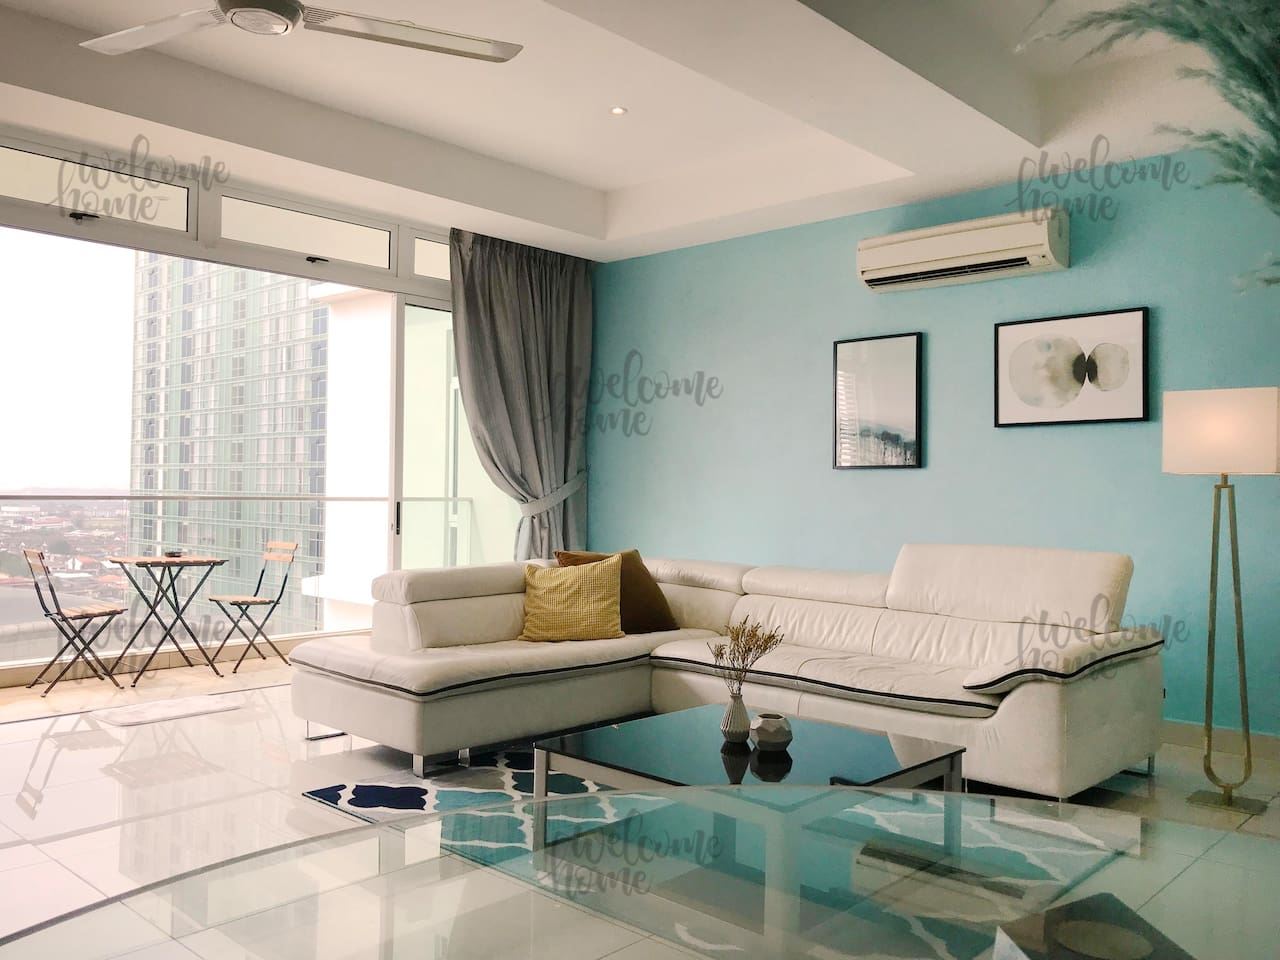 Grand & spacious living and dining area with L-shape genuine leather sofa.